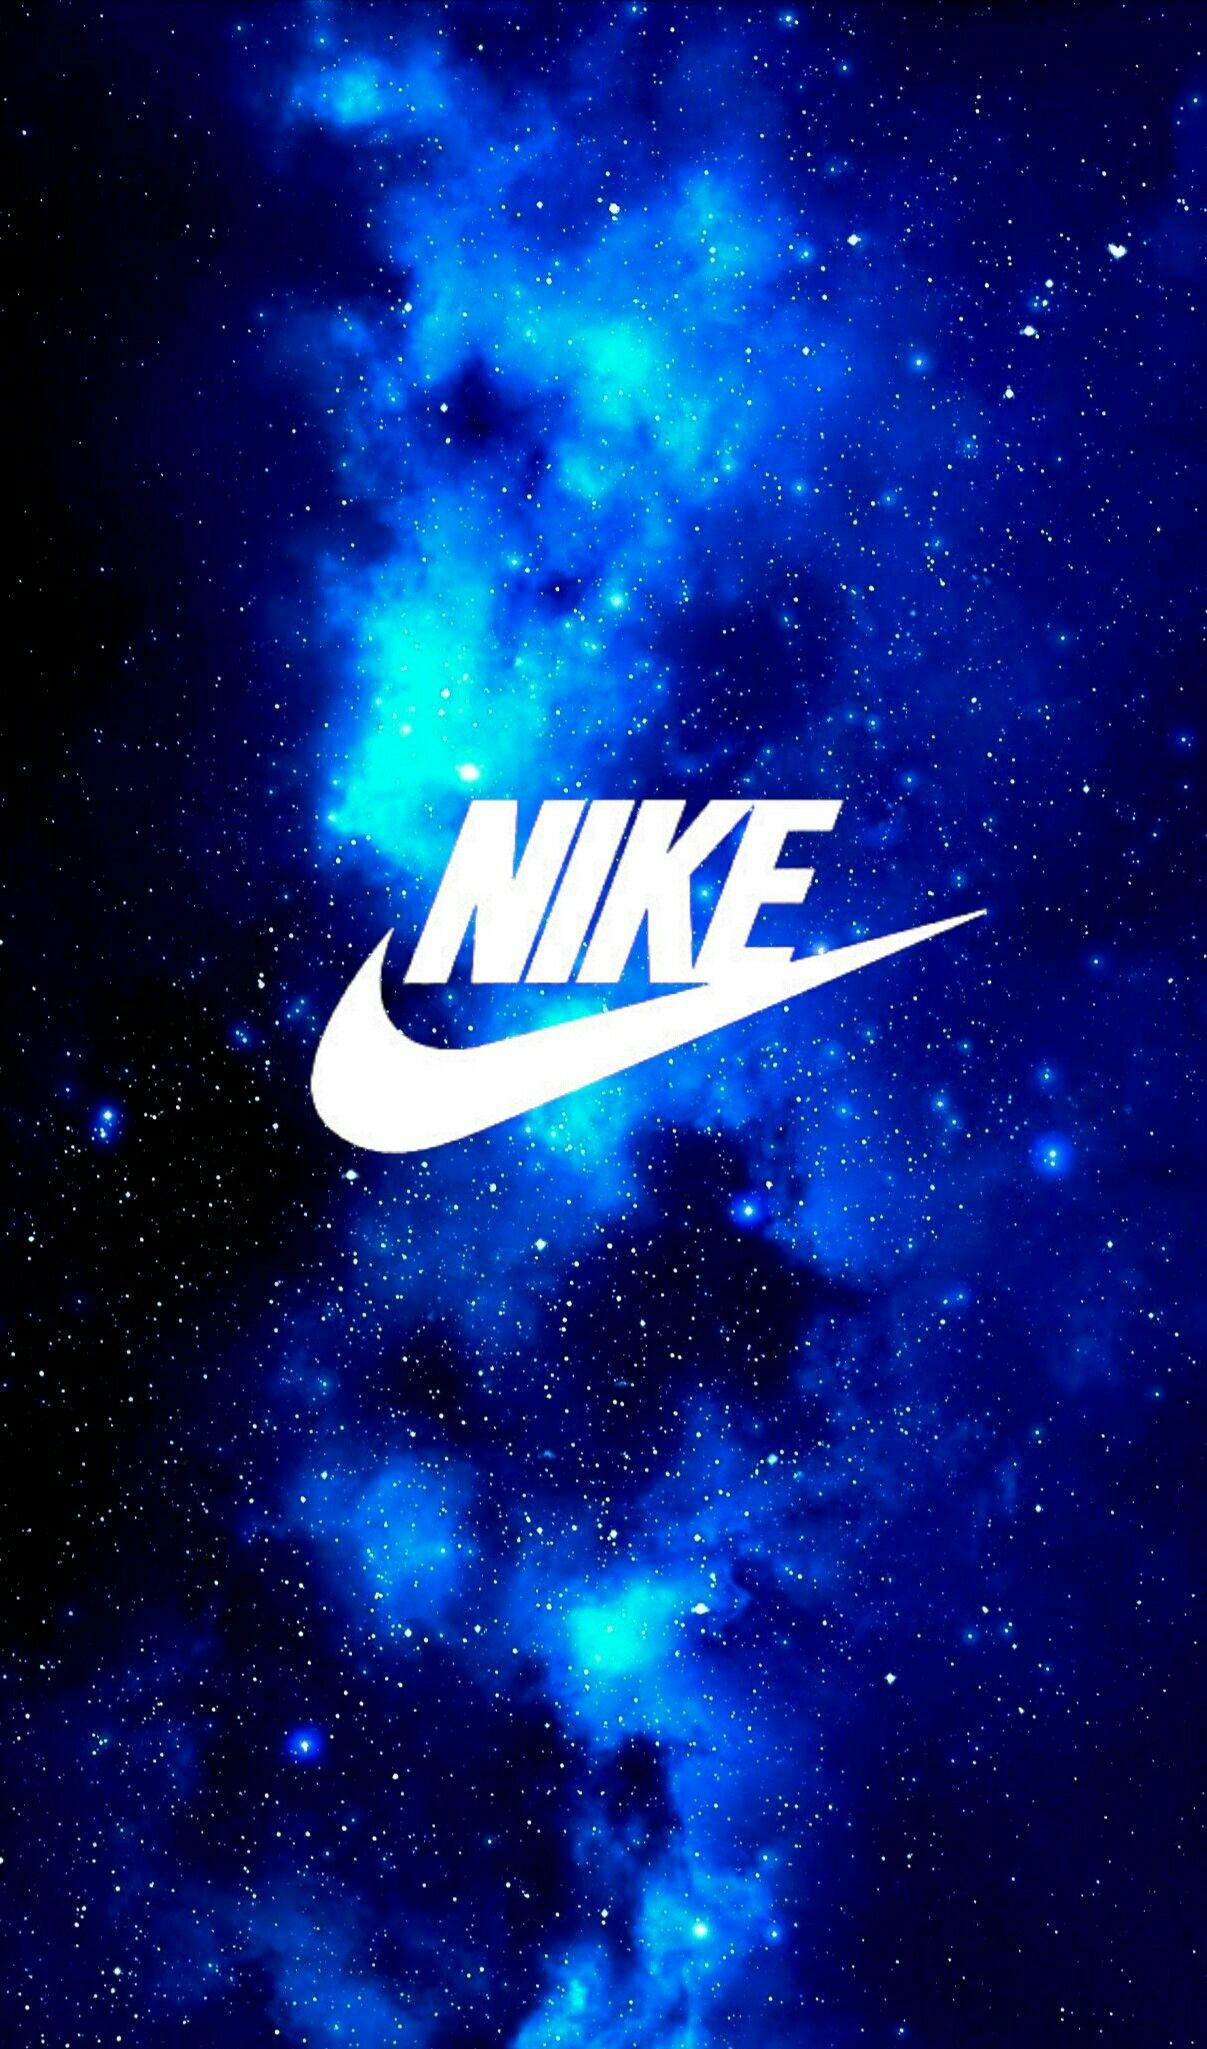 Pin By Perle On Brands In 2020 Nike Logo Wallpapers Nike Wallpaper Cool Nike Wallpapers